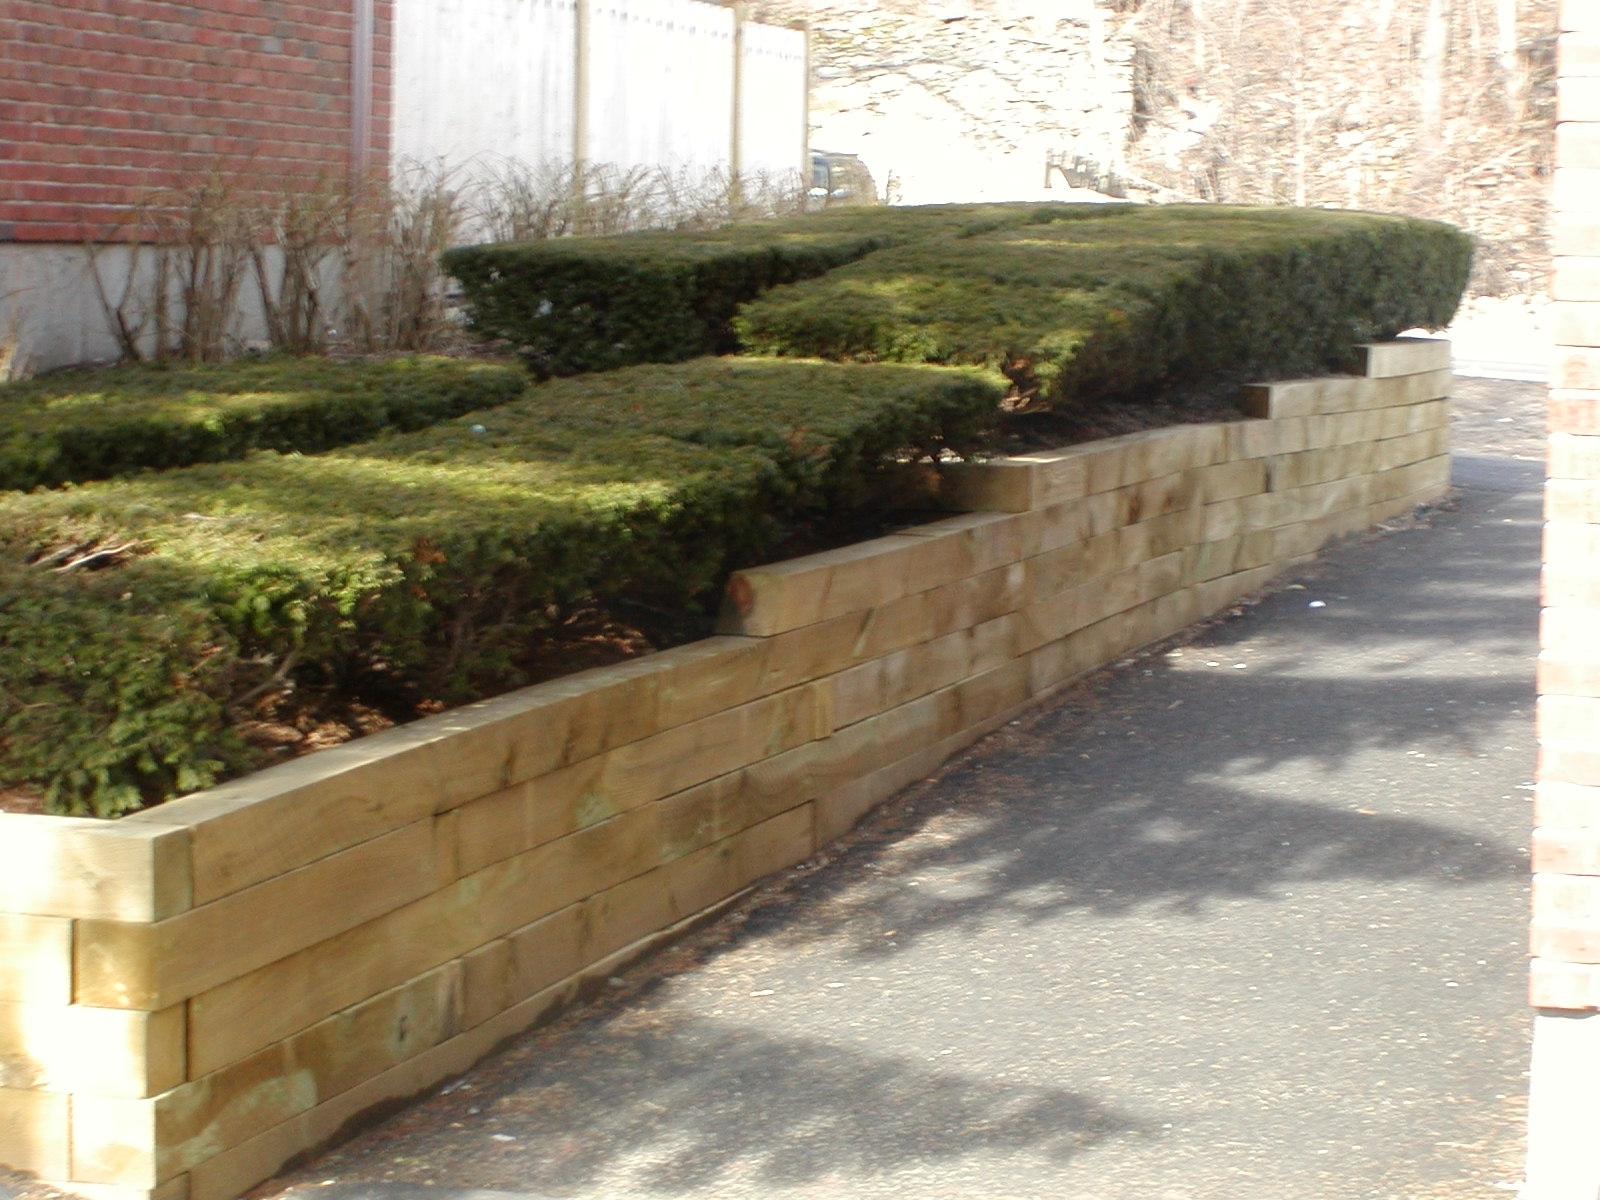 Image of: Landscape Timbers Retaining Wall Why Landscape Timbers Using With Landscape Timbers Retaining Wall Durable Landscape Timbers Retaining Wall For Great Decoration